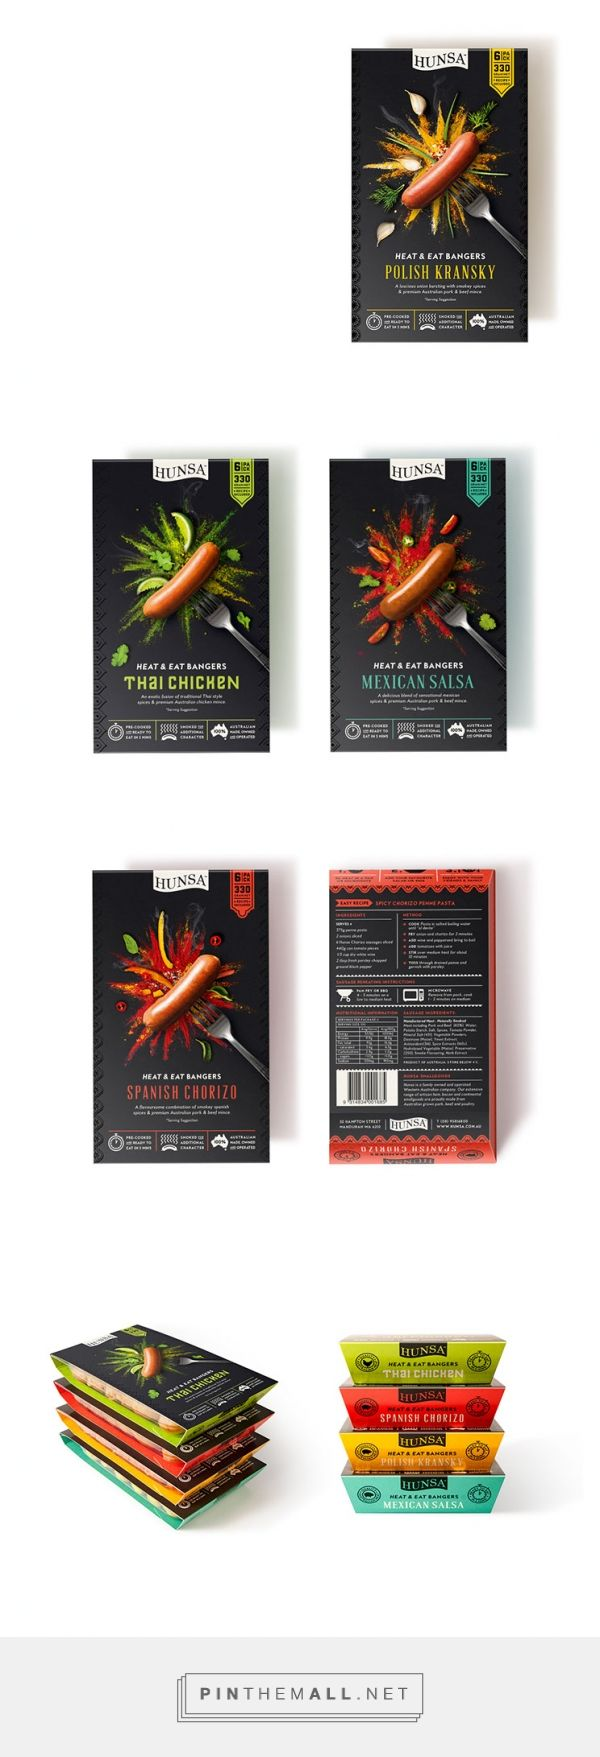 Sausage packaging design & food illustrations | Dessein - created via http://pinthemall.net